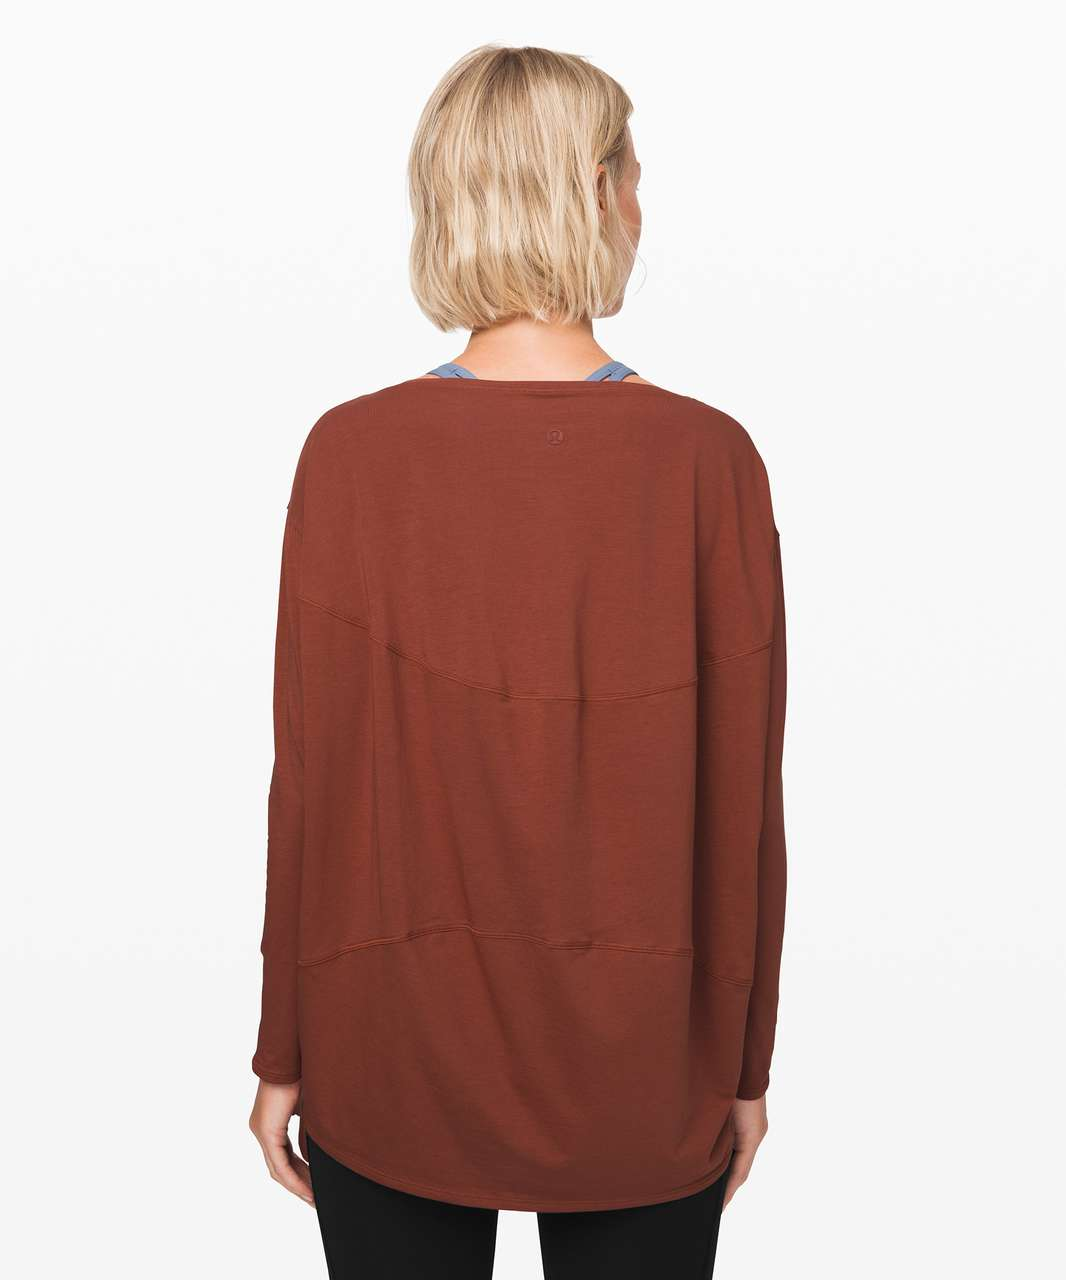 Lululemon Back In Action Long Sleeve - Rustic Clay